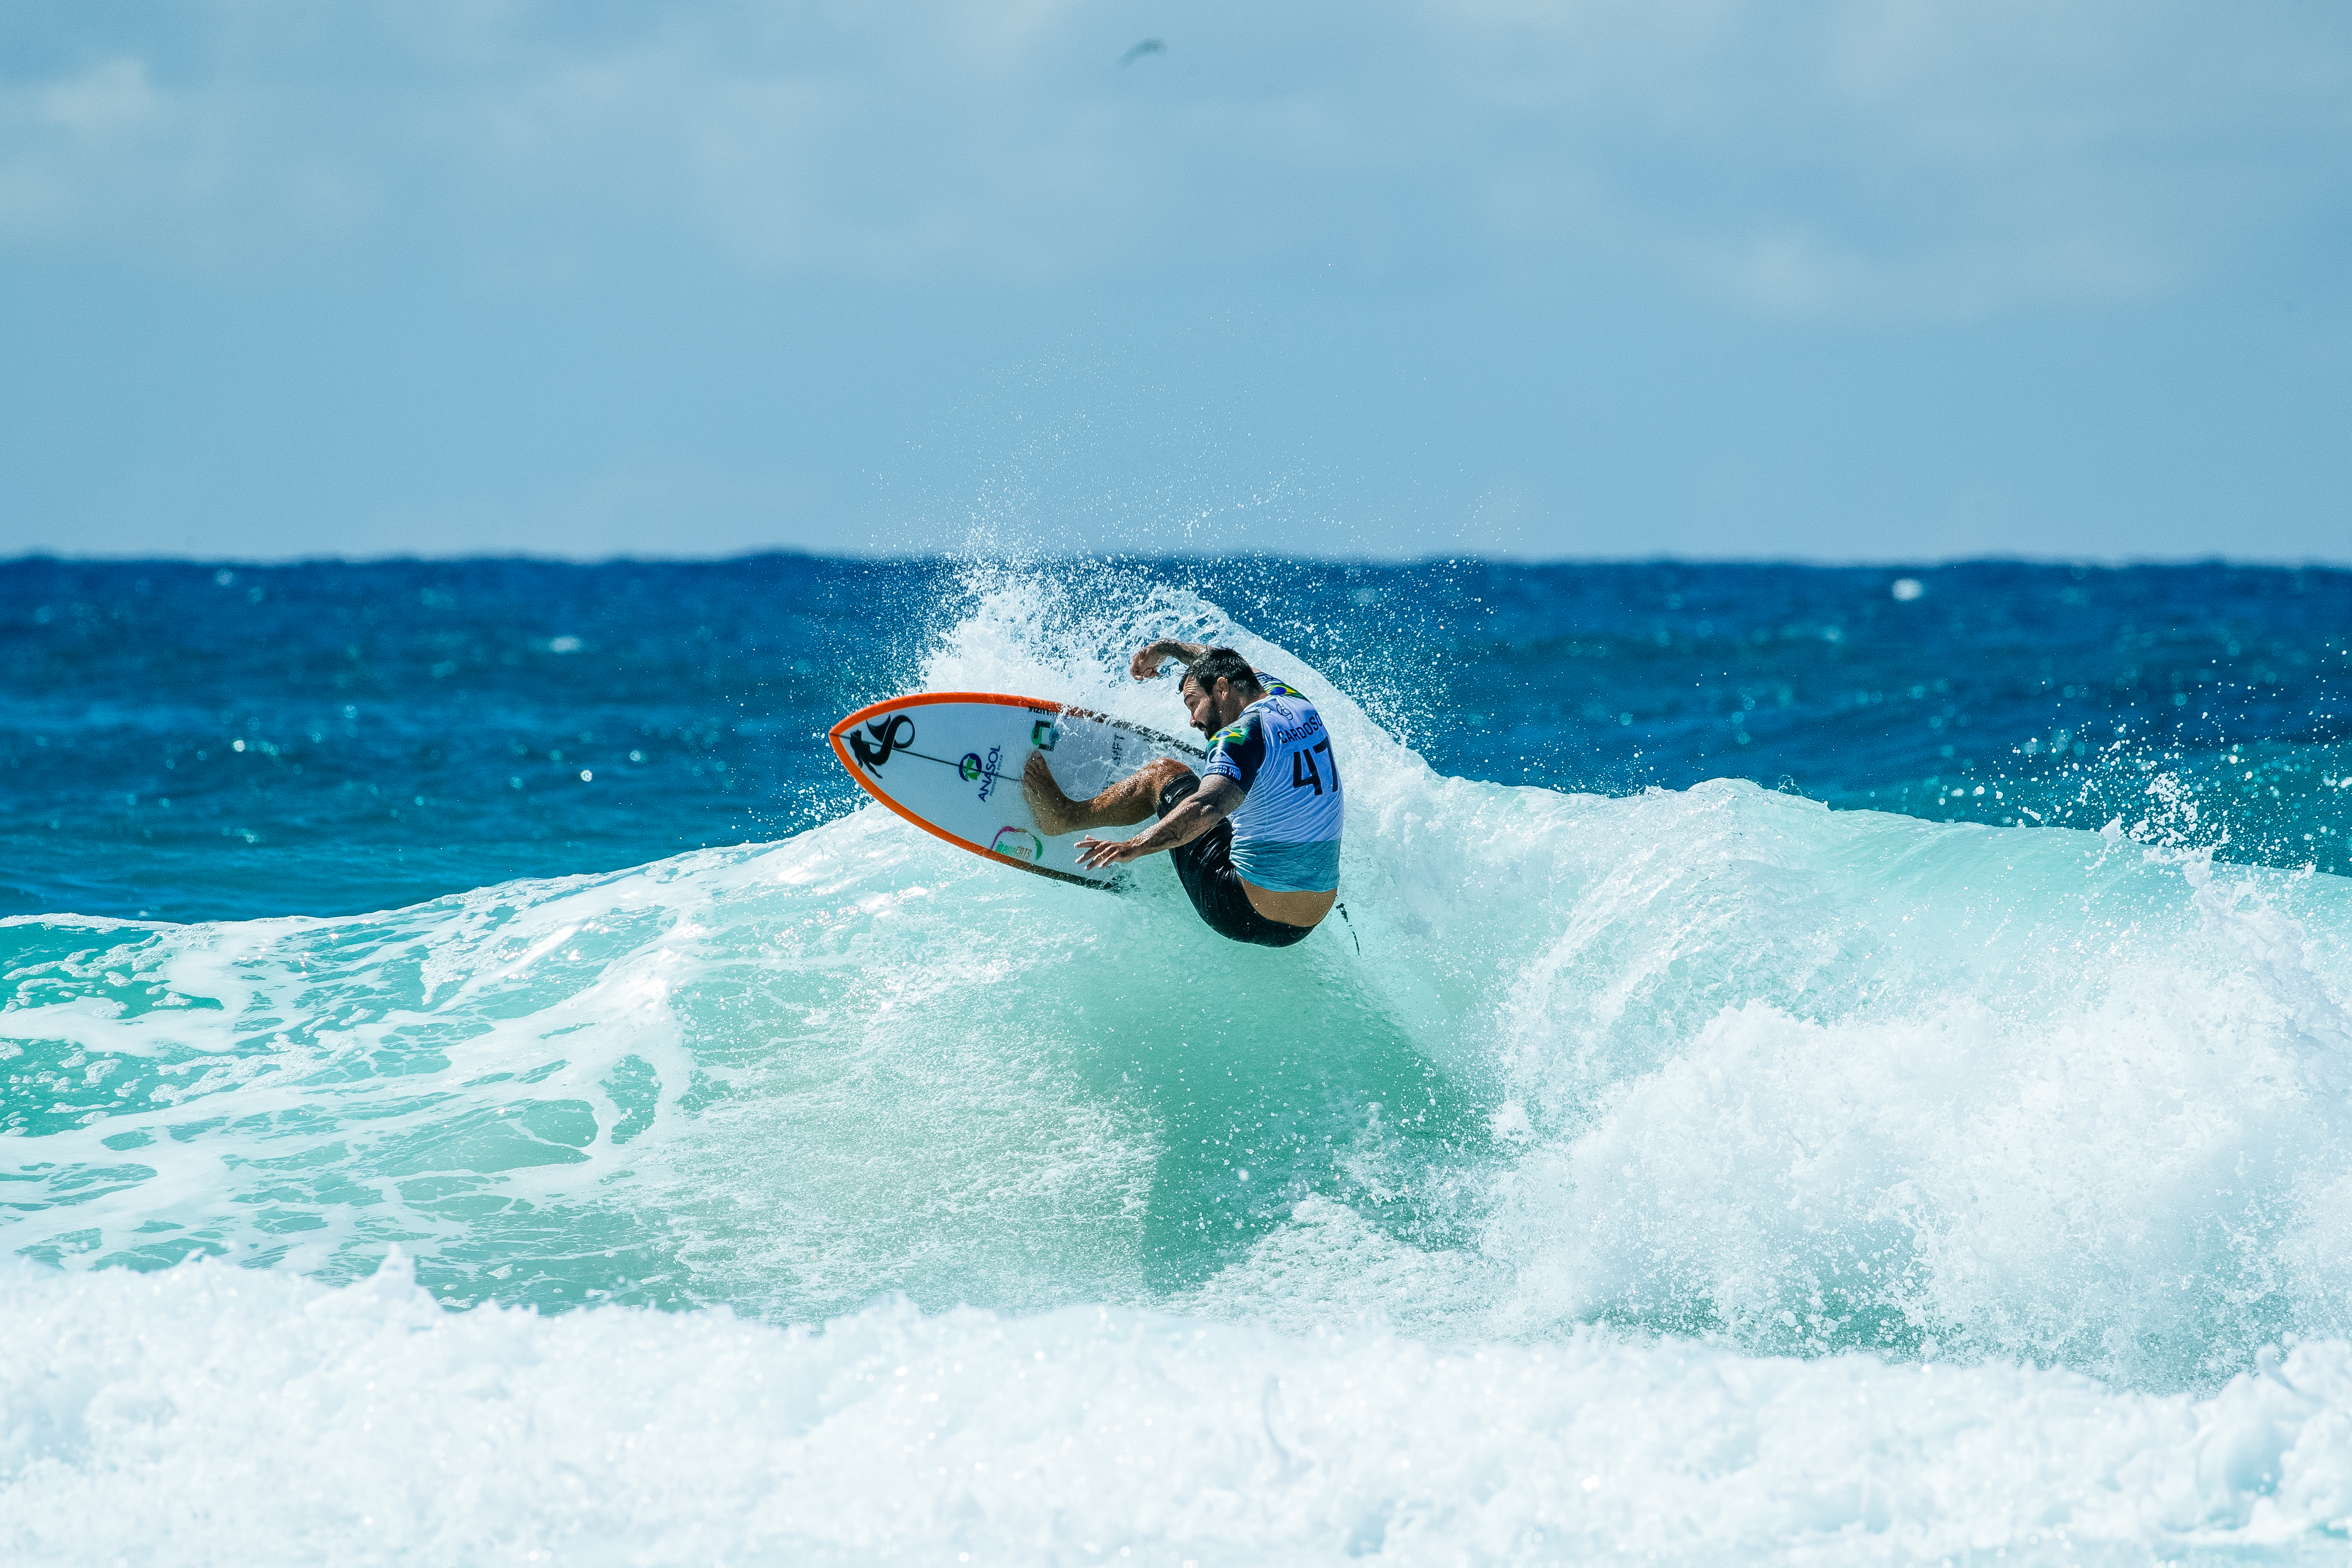 QUEENSLAND, AUSTRALIA - APRIL 5: Willian Cardoso of Brazil advances to Round 4 of the 2019 Quiksilver Pro Gold Coast after winning Heat 14 of Round 3 at Duranbah Beach on April 5, 2019 in Queensland, Australia. (Photo by Matt Dunbar/WSL via Getty Images)